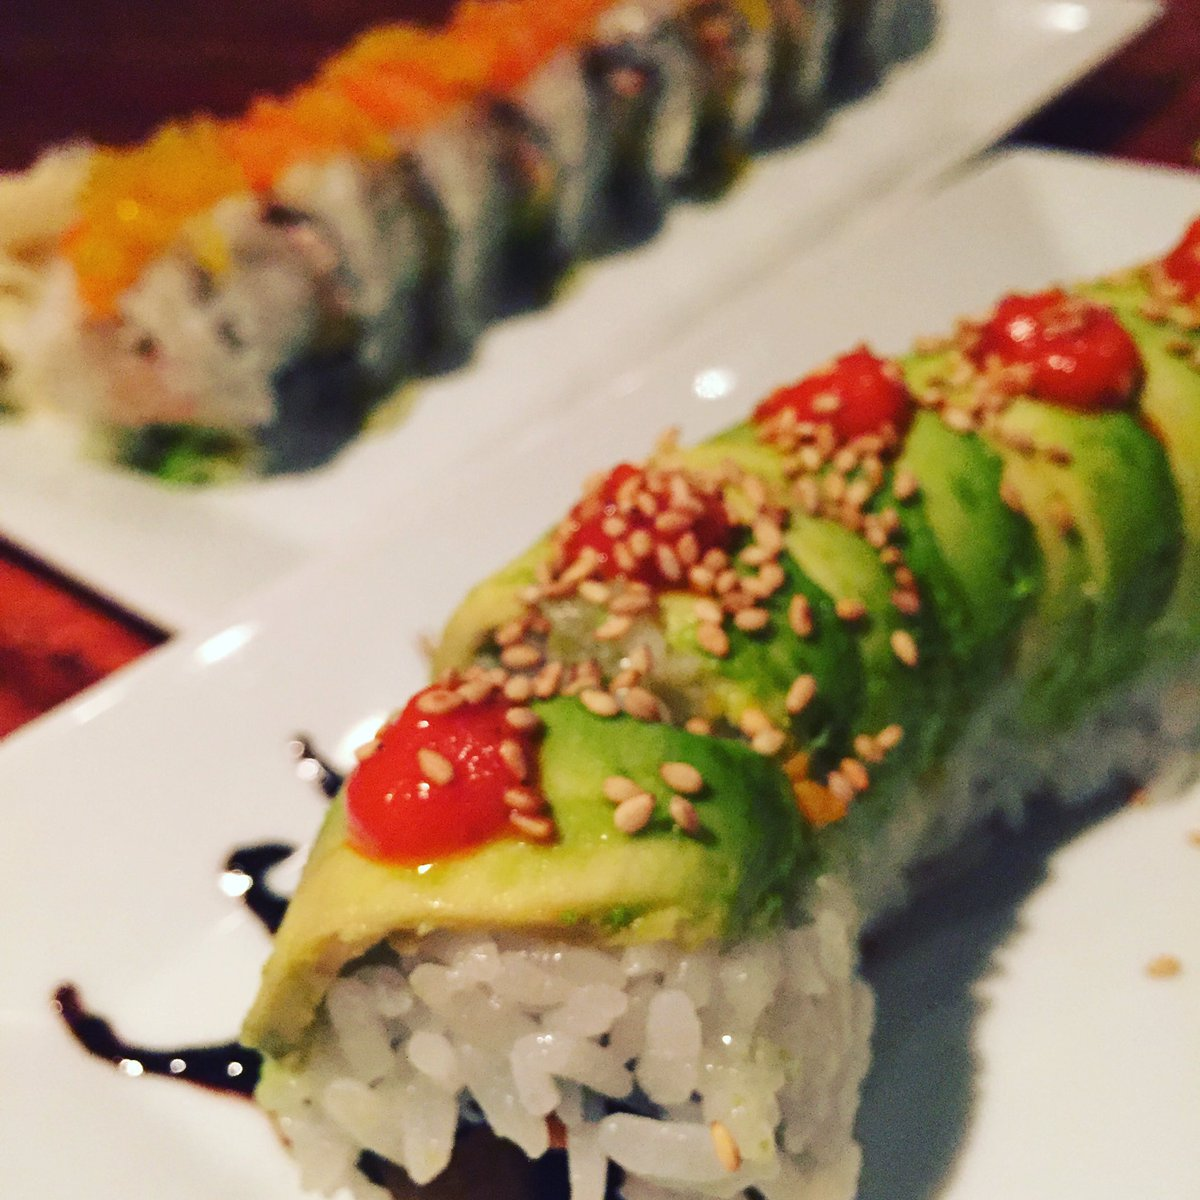 Sweet potato caterpillar #vegetarian roll is one of our most popular items, #Asian pear and avocado! https://t.co/jsL0DXhGdl